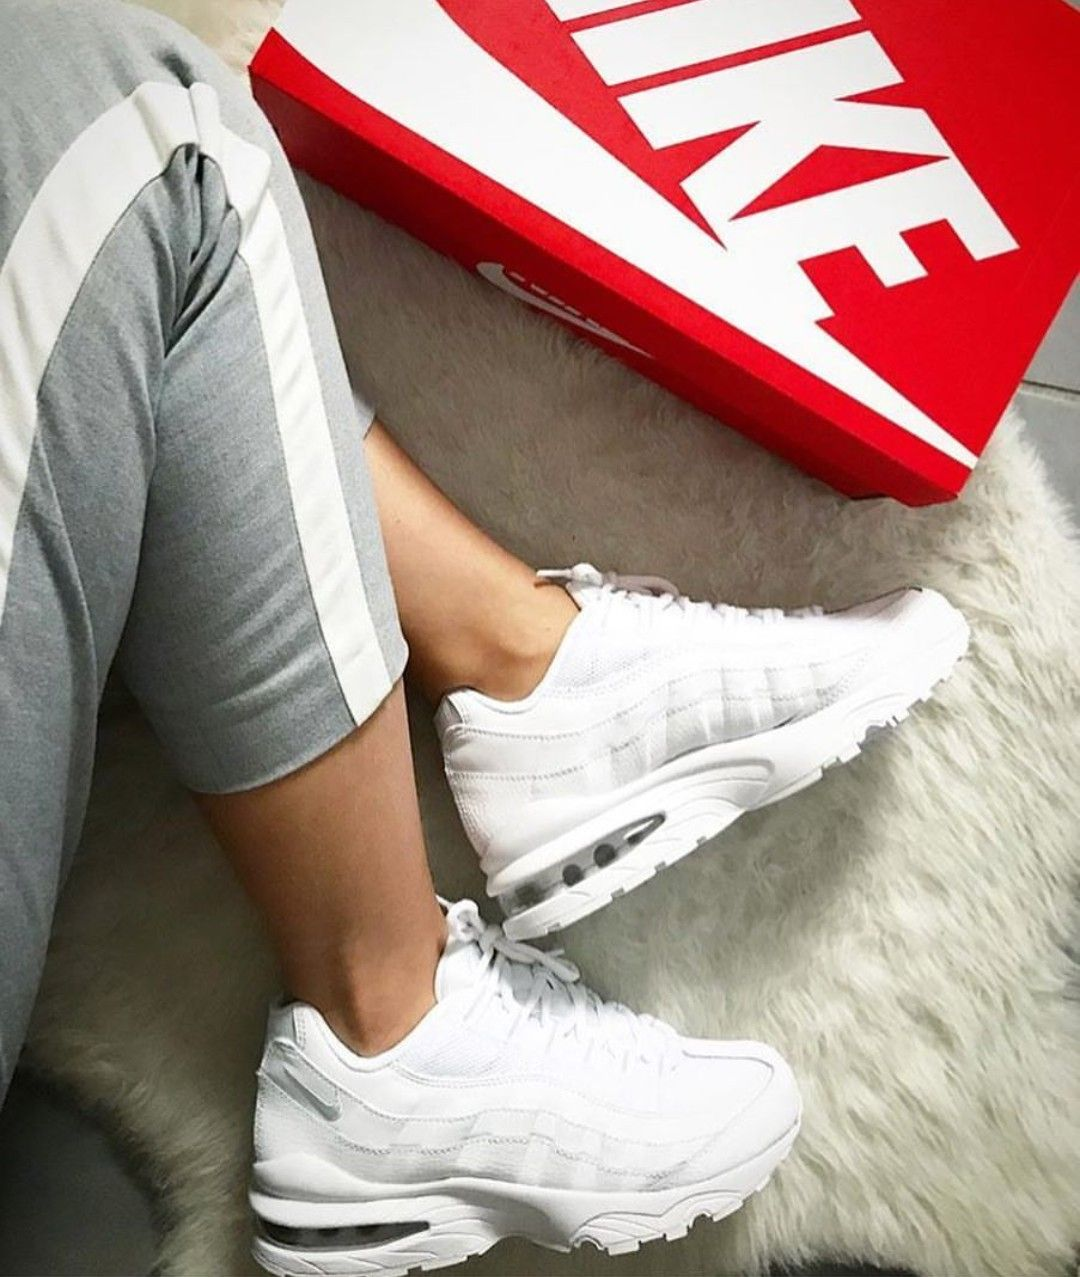 Nike Air Max 95 In White Weiss Foto Fanamss Instagram Nike Air Max Air Max 95 Und Nike Air